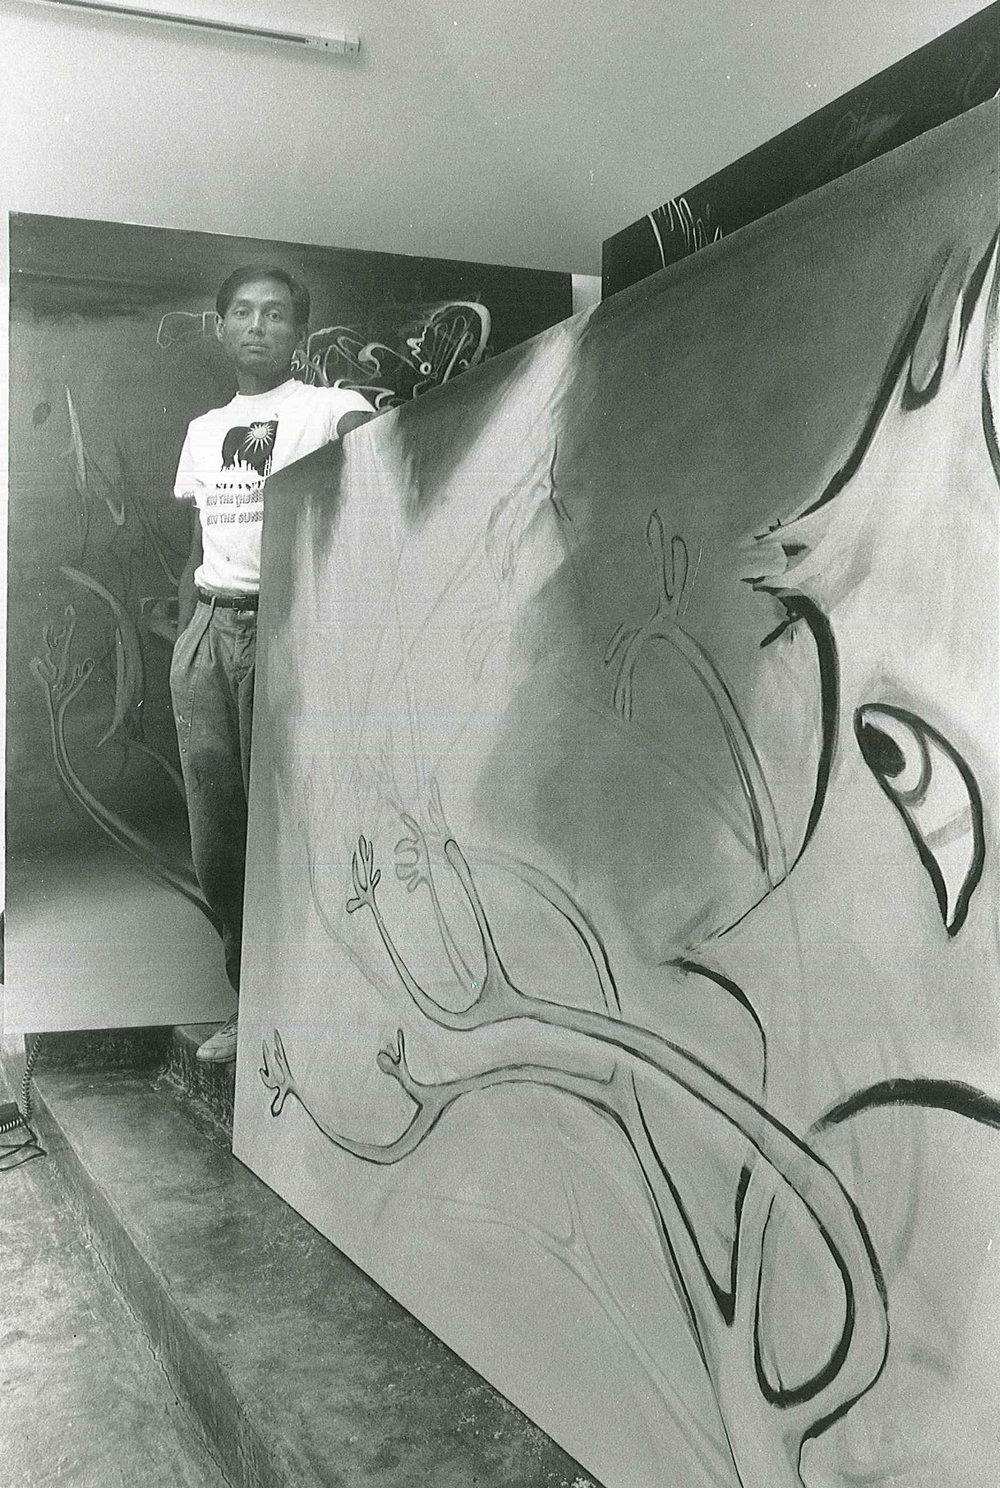 Ed in his studio. Courtesy of the Estate of Ed Aulerich-Sugai.